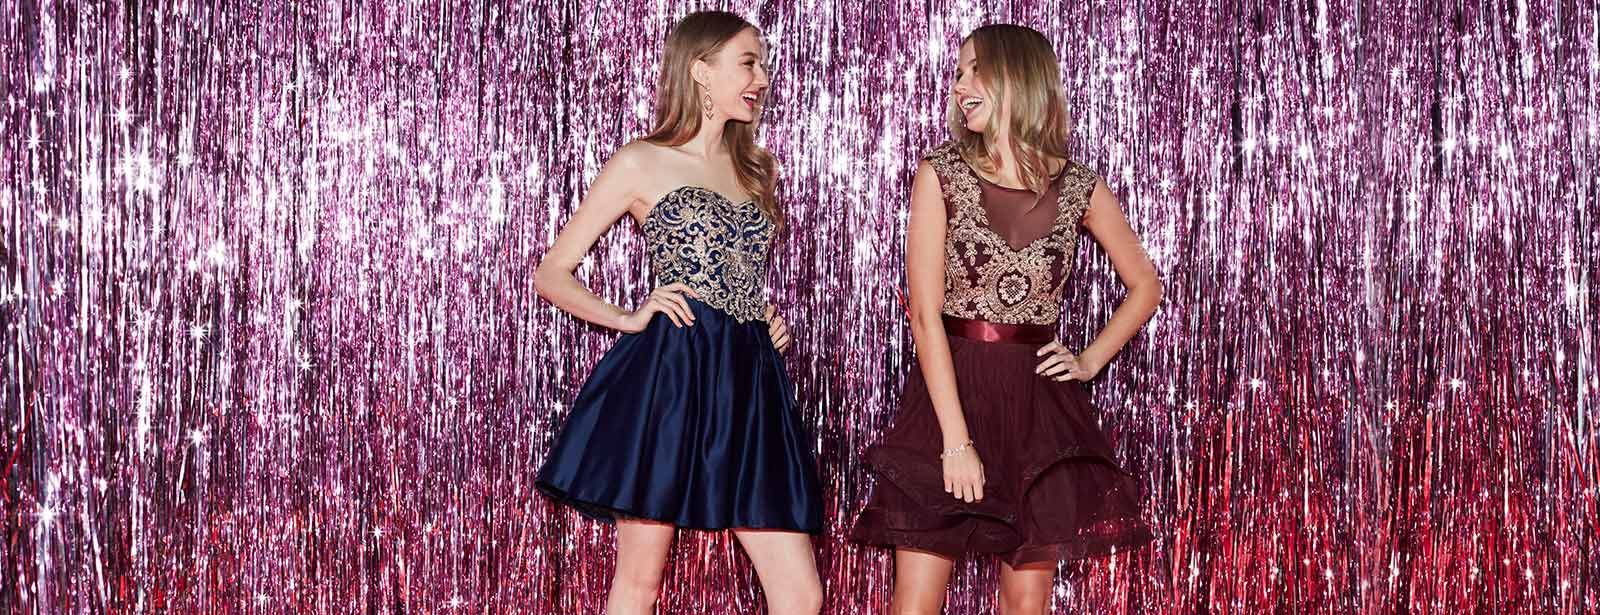 Girls at their homecoming dance laughing and having fun.